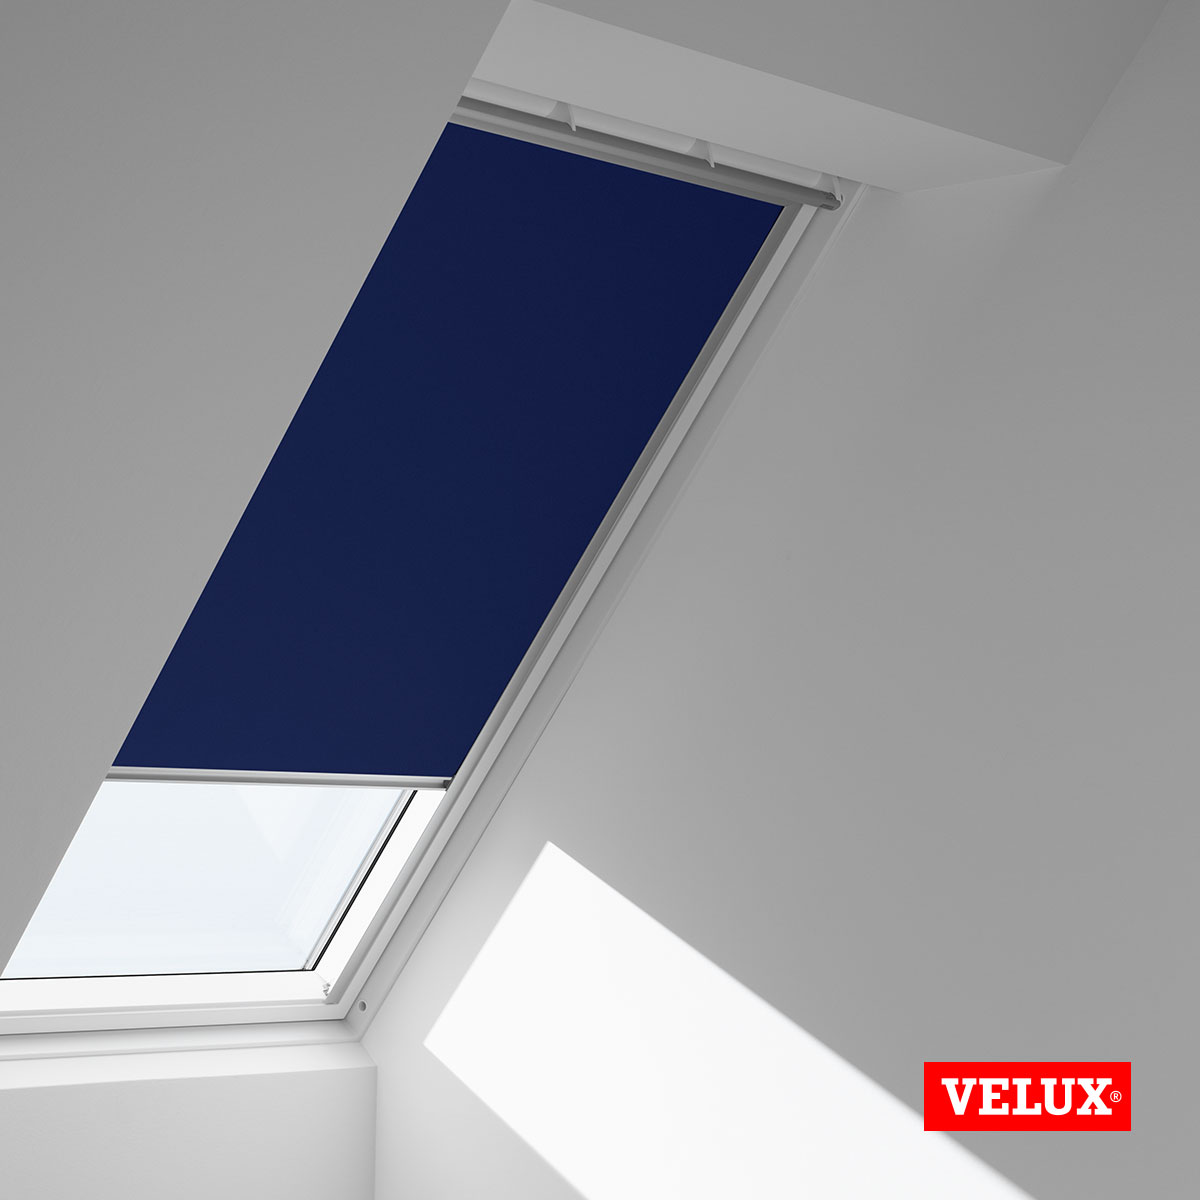 store velux ggl 4 unglaublich store velux s leroy merlin ggl castorama ghl pour dkl dfd duo gfl. Black Bedroom Furniture Sets. Home Design Ideas